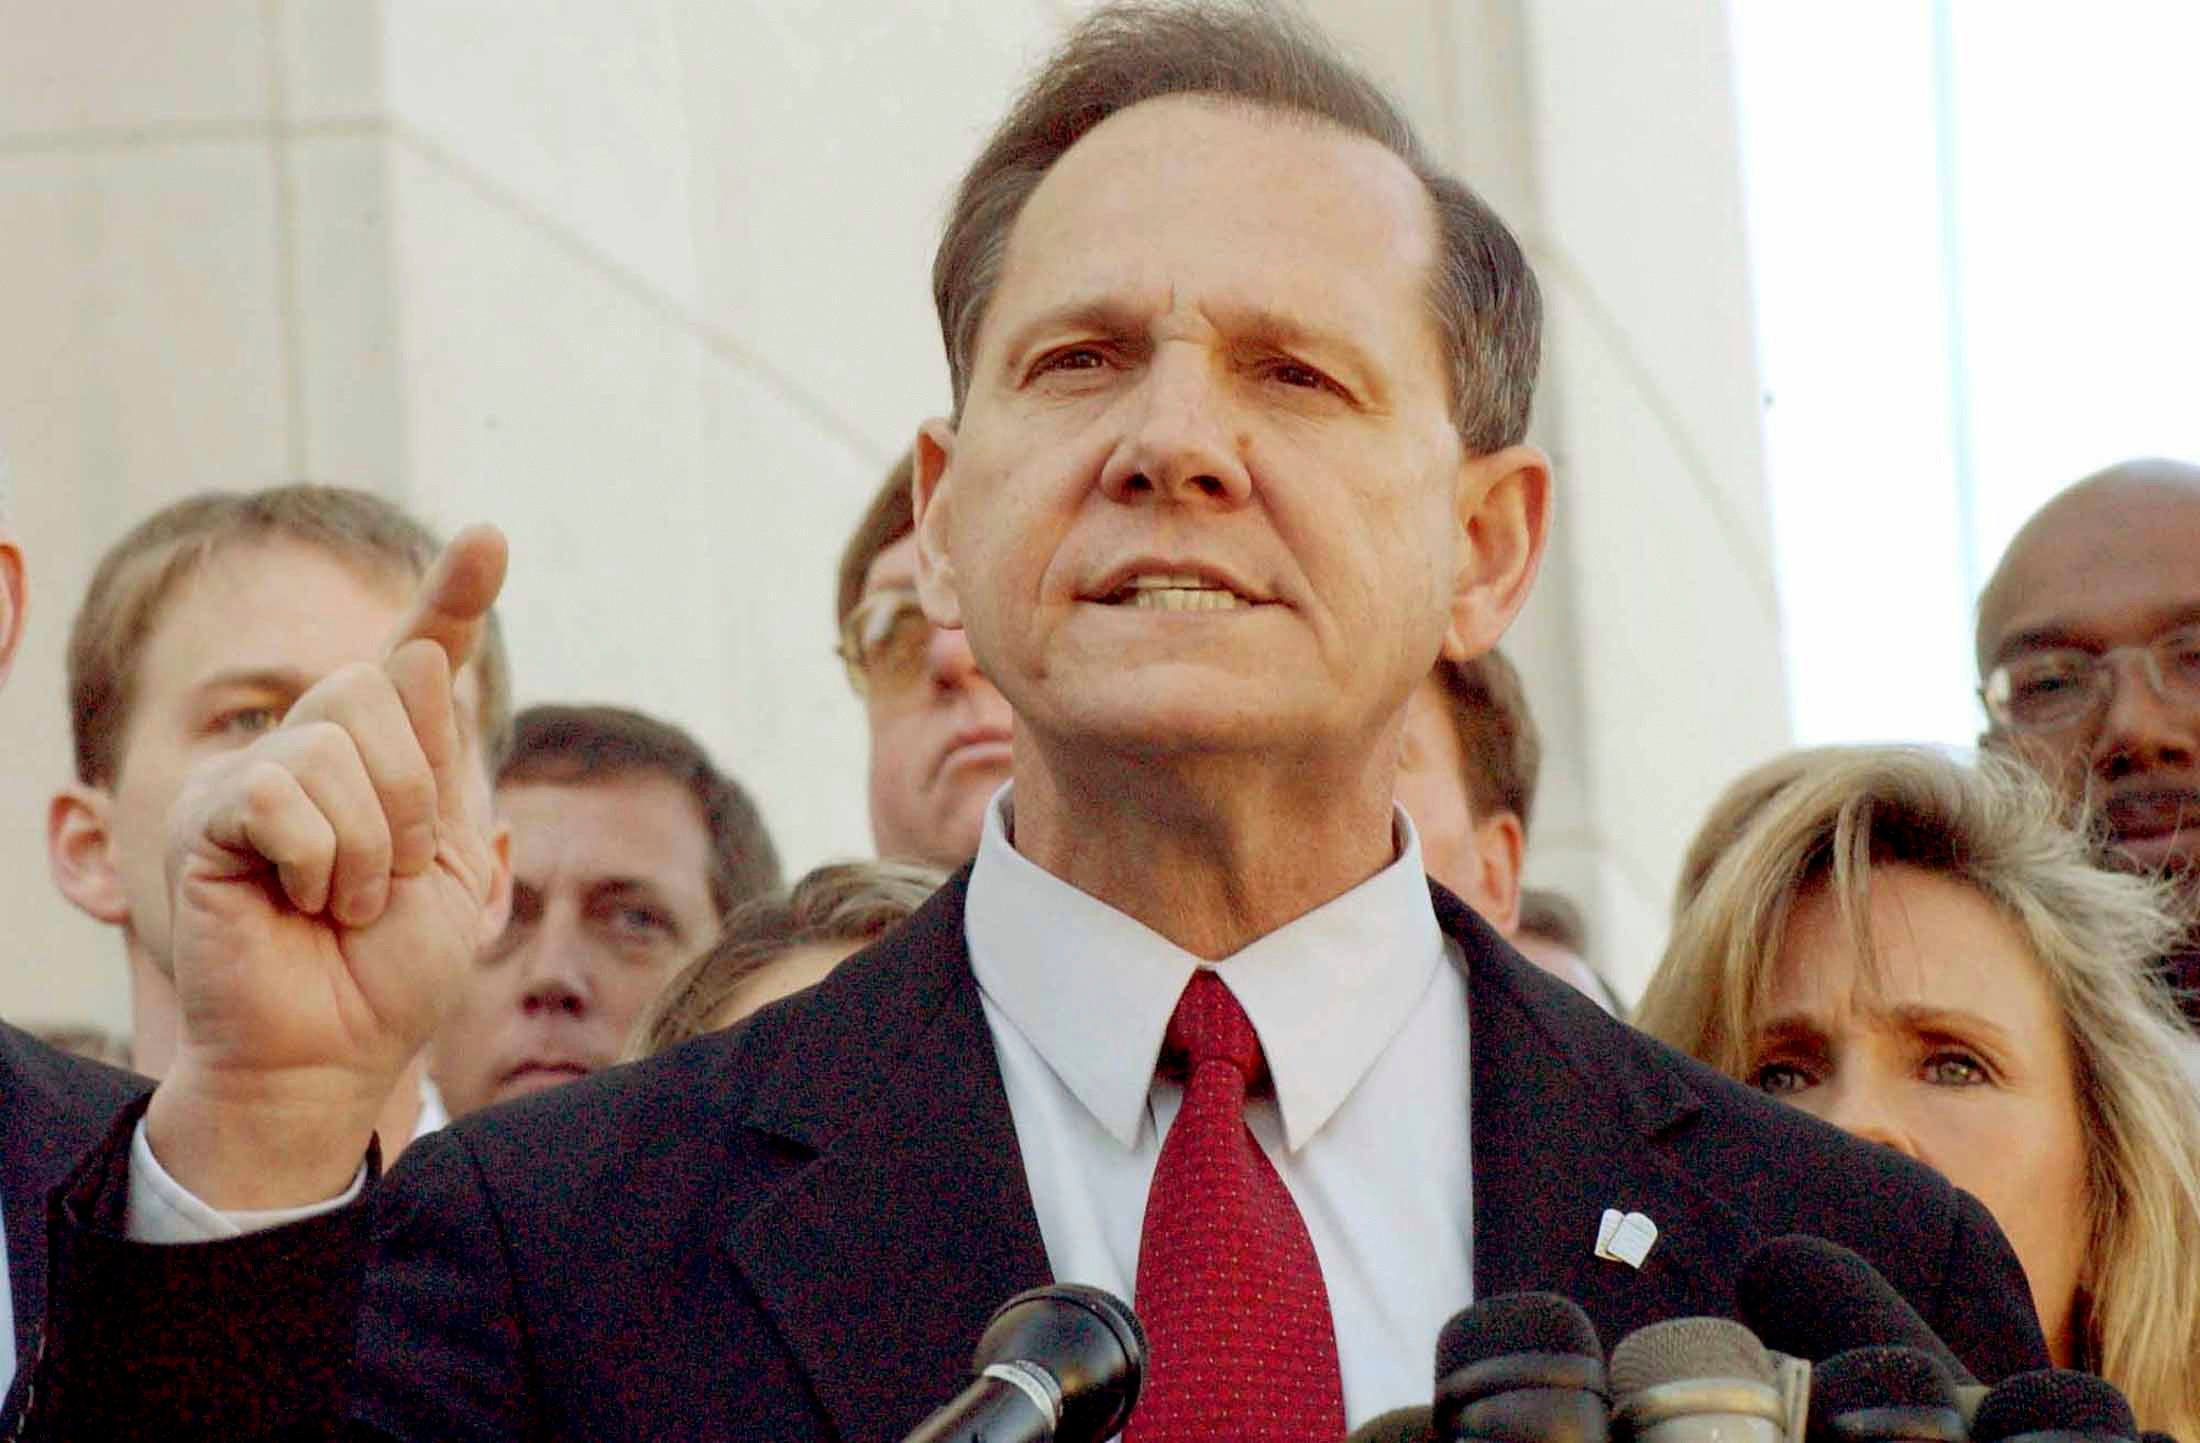 Senate candidate Roy Moore tolda Republican group in Alabama on Monday that Islam is a